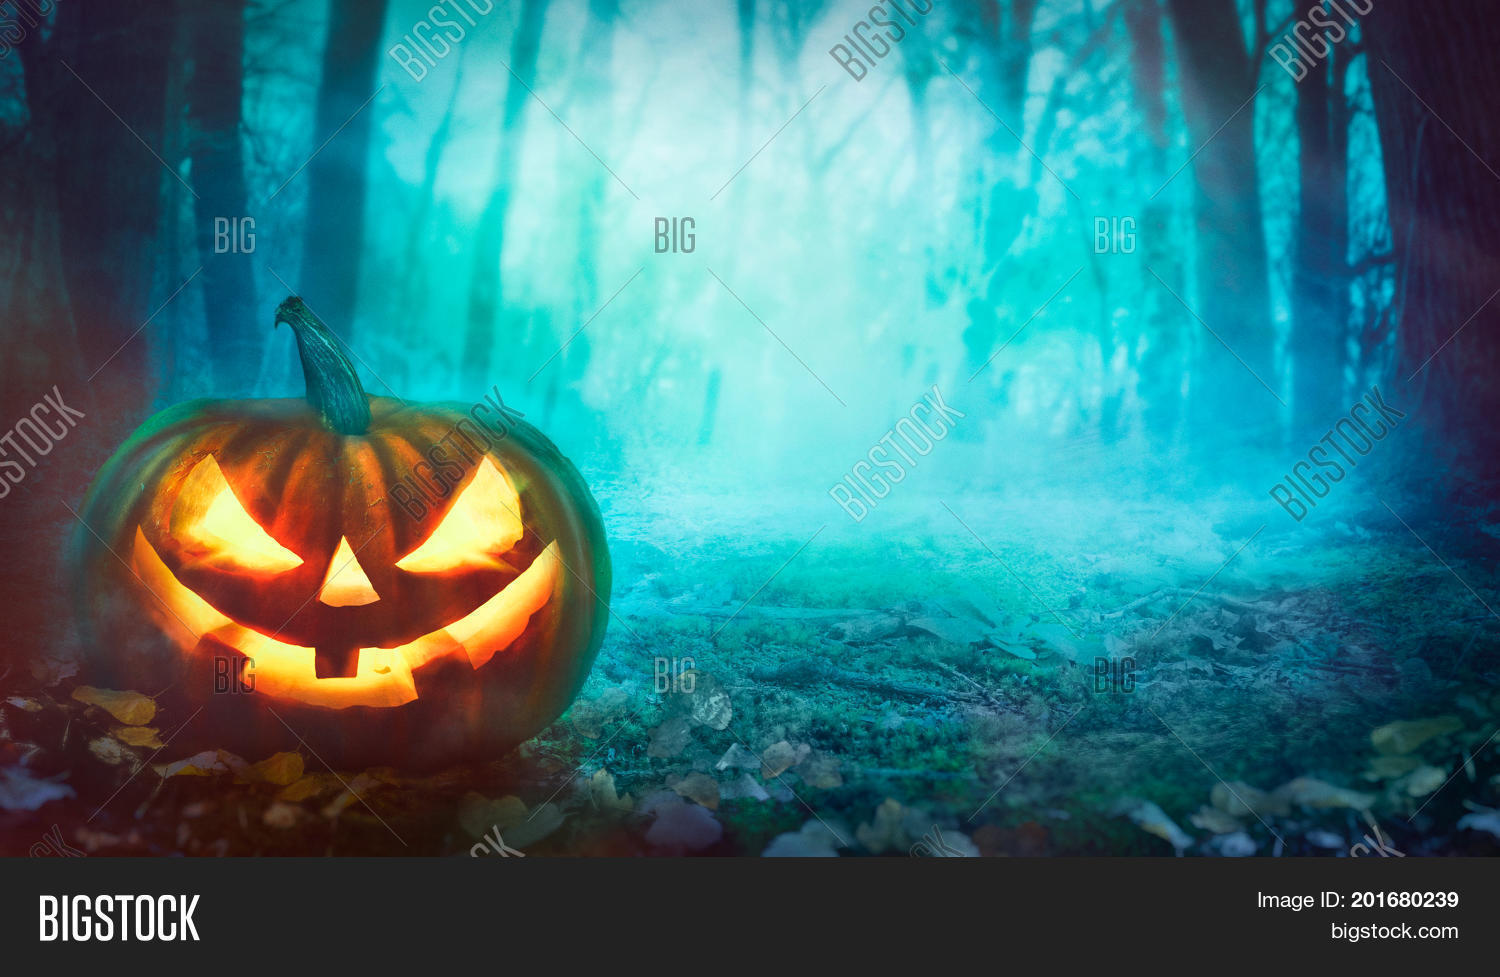 Halloween Background Image Photo Trial Bigstock 1500x977